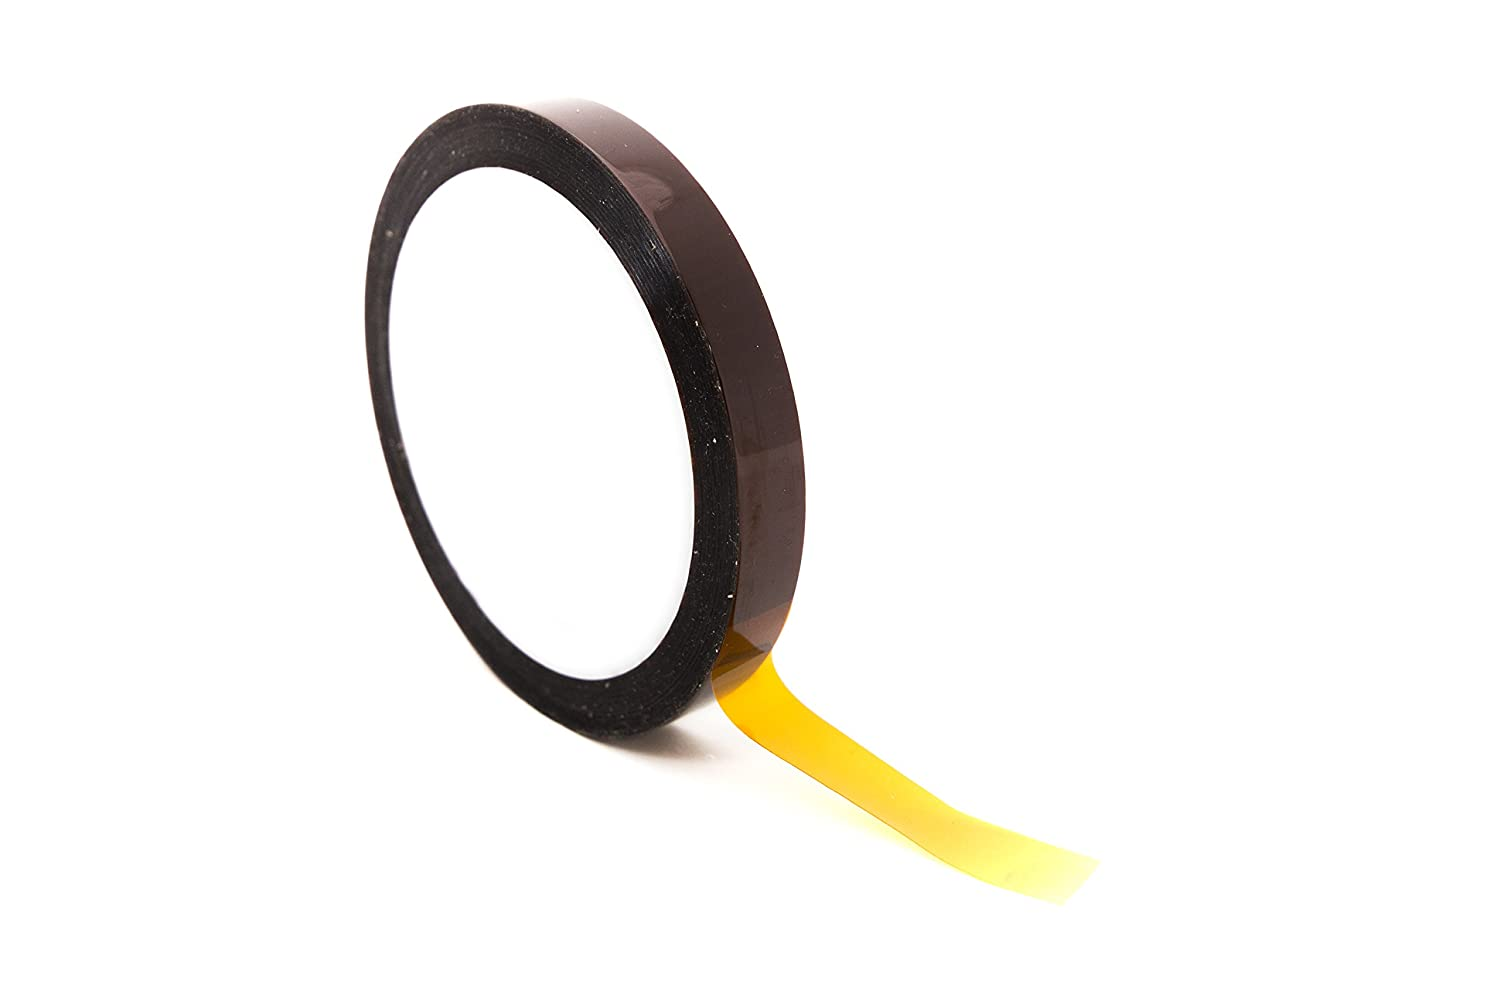 Bertech KPT2-1 2 Kapton Tape Mil Wide Thick Inches Direct sale of manufacturer x Dealing full price reduction 44198 3